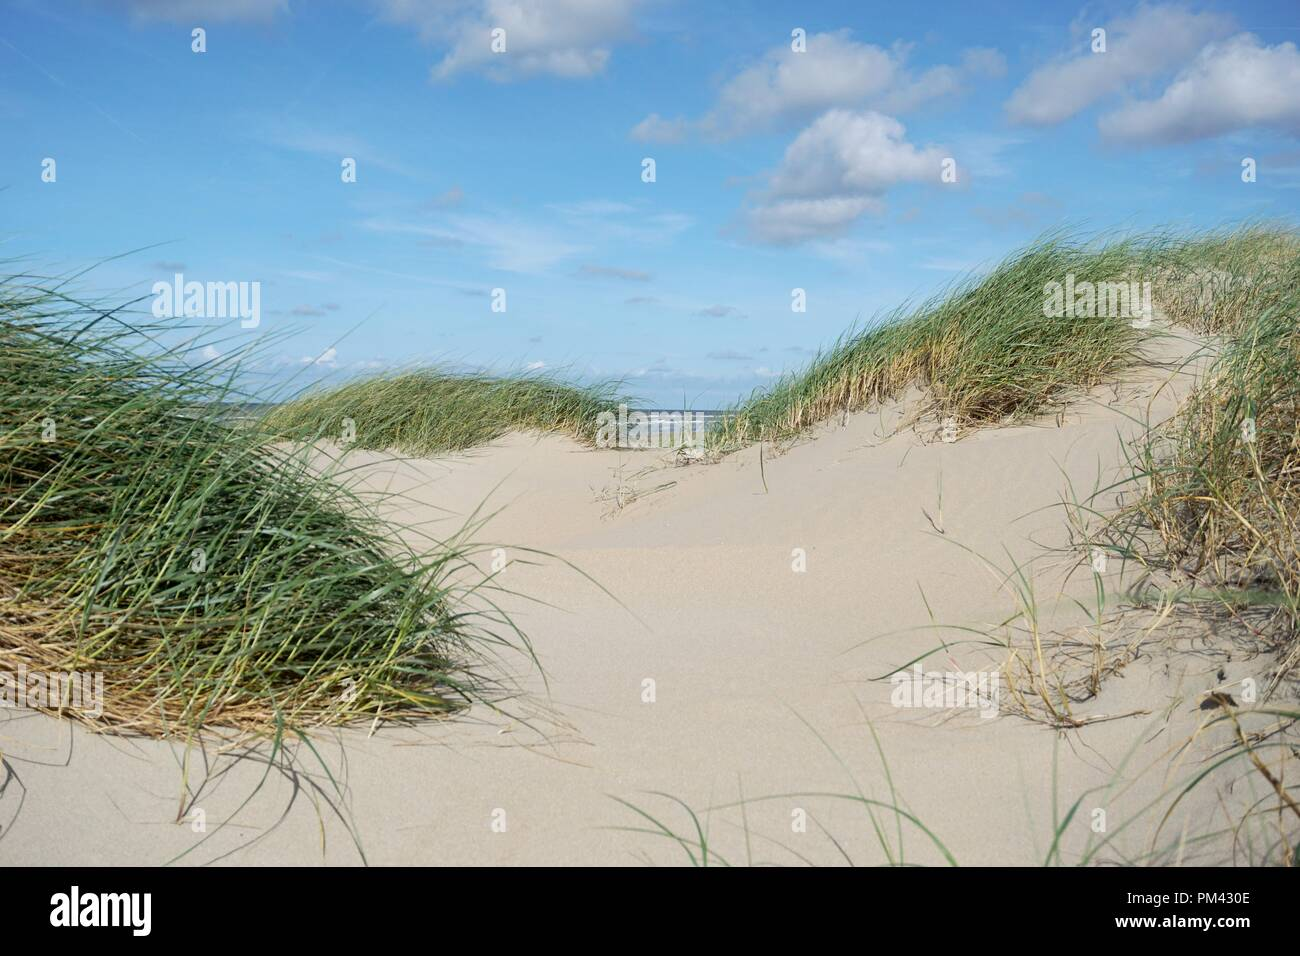 sand dune with grass at the noth sea - Stock Image